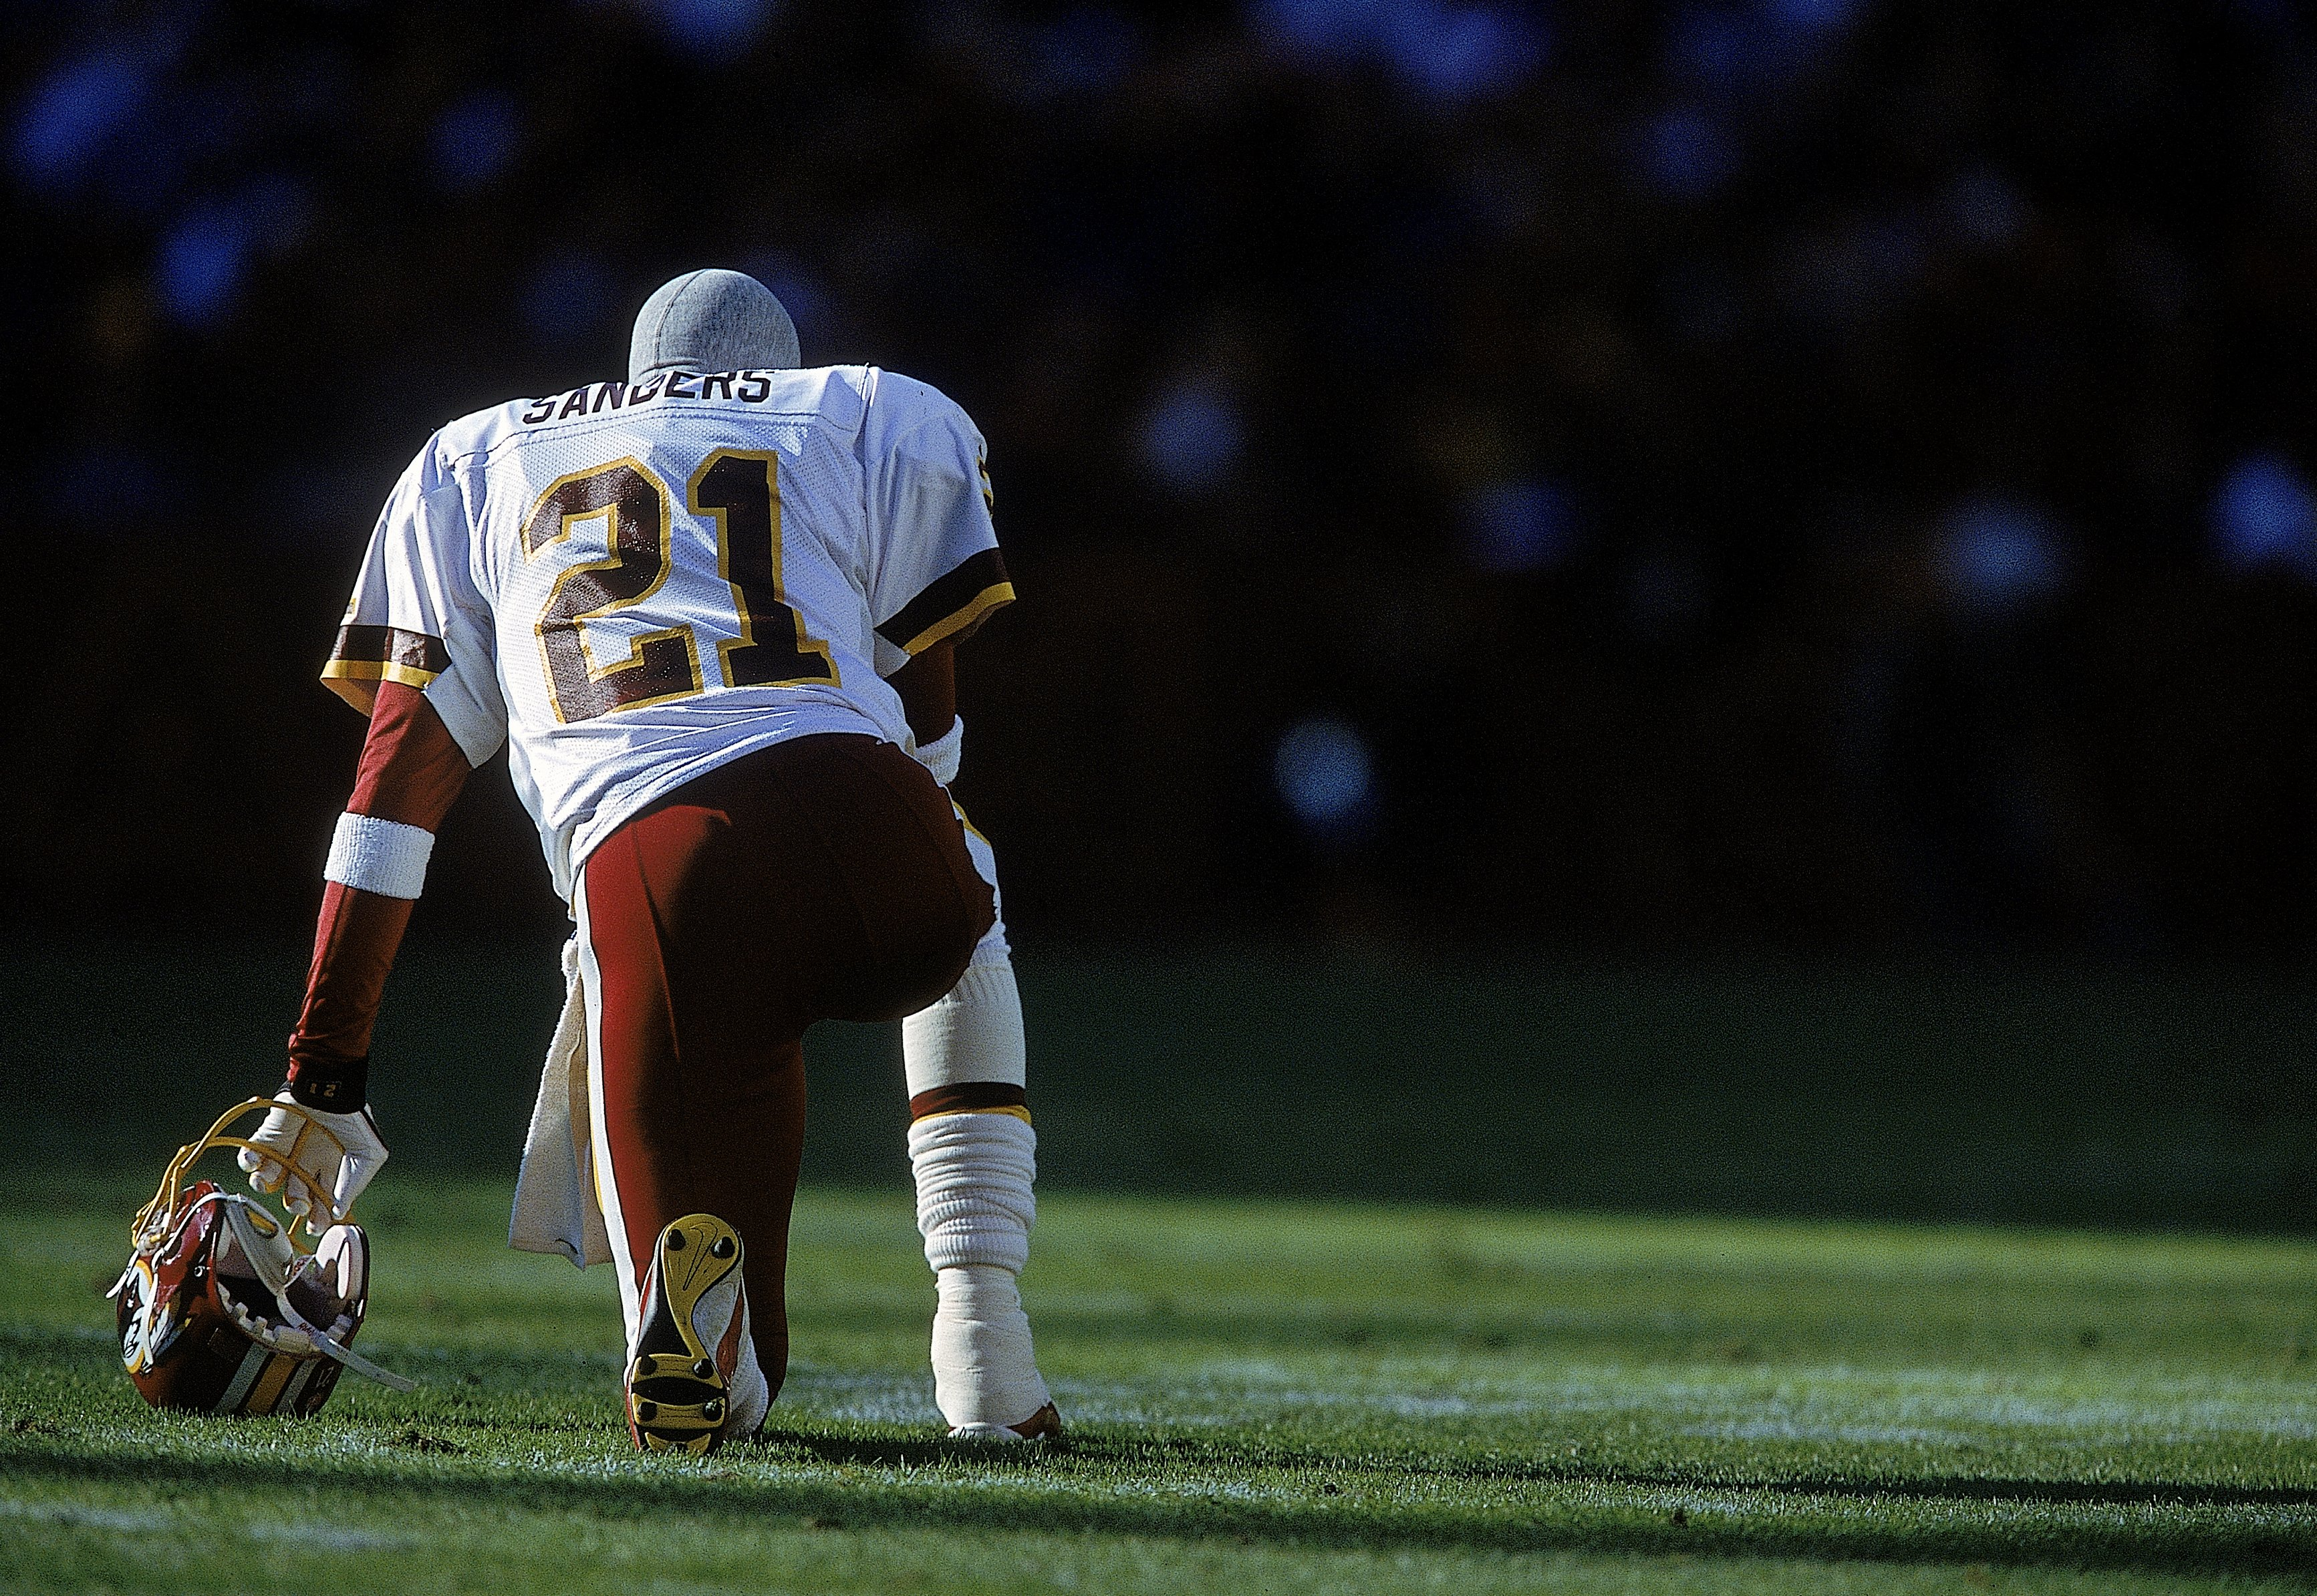 26 Nov 2000: Deion Sanders #21 of the Washington Redskins kneels on the field before the game against the Philadelphia Eagles at the FedEx Field in Landover, Maryland. The Eagles defeated the Redskins 23-20.Mandatory Credit: Jamie Squire  /Allsport